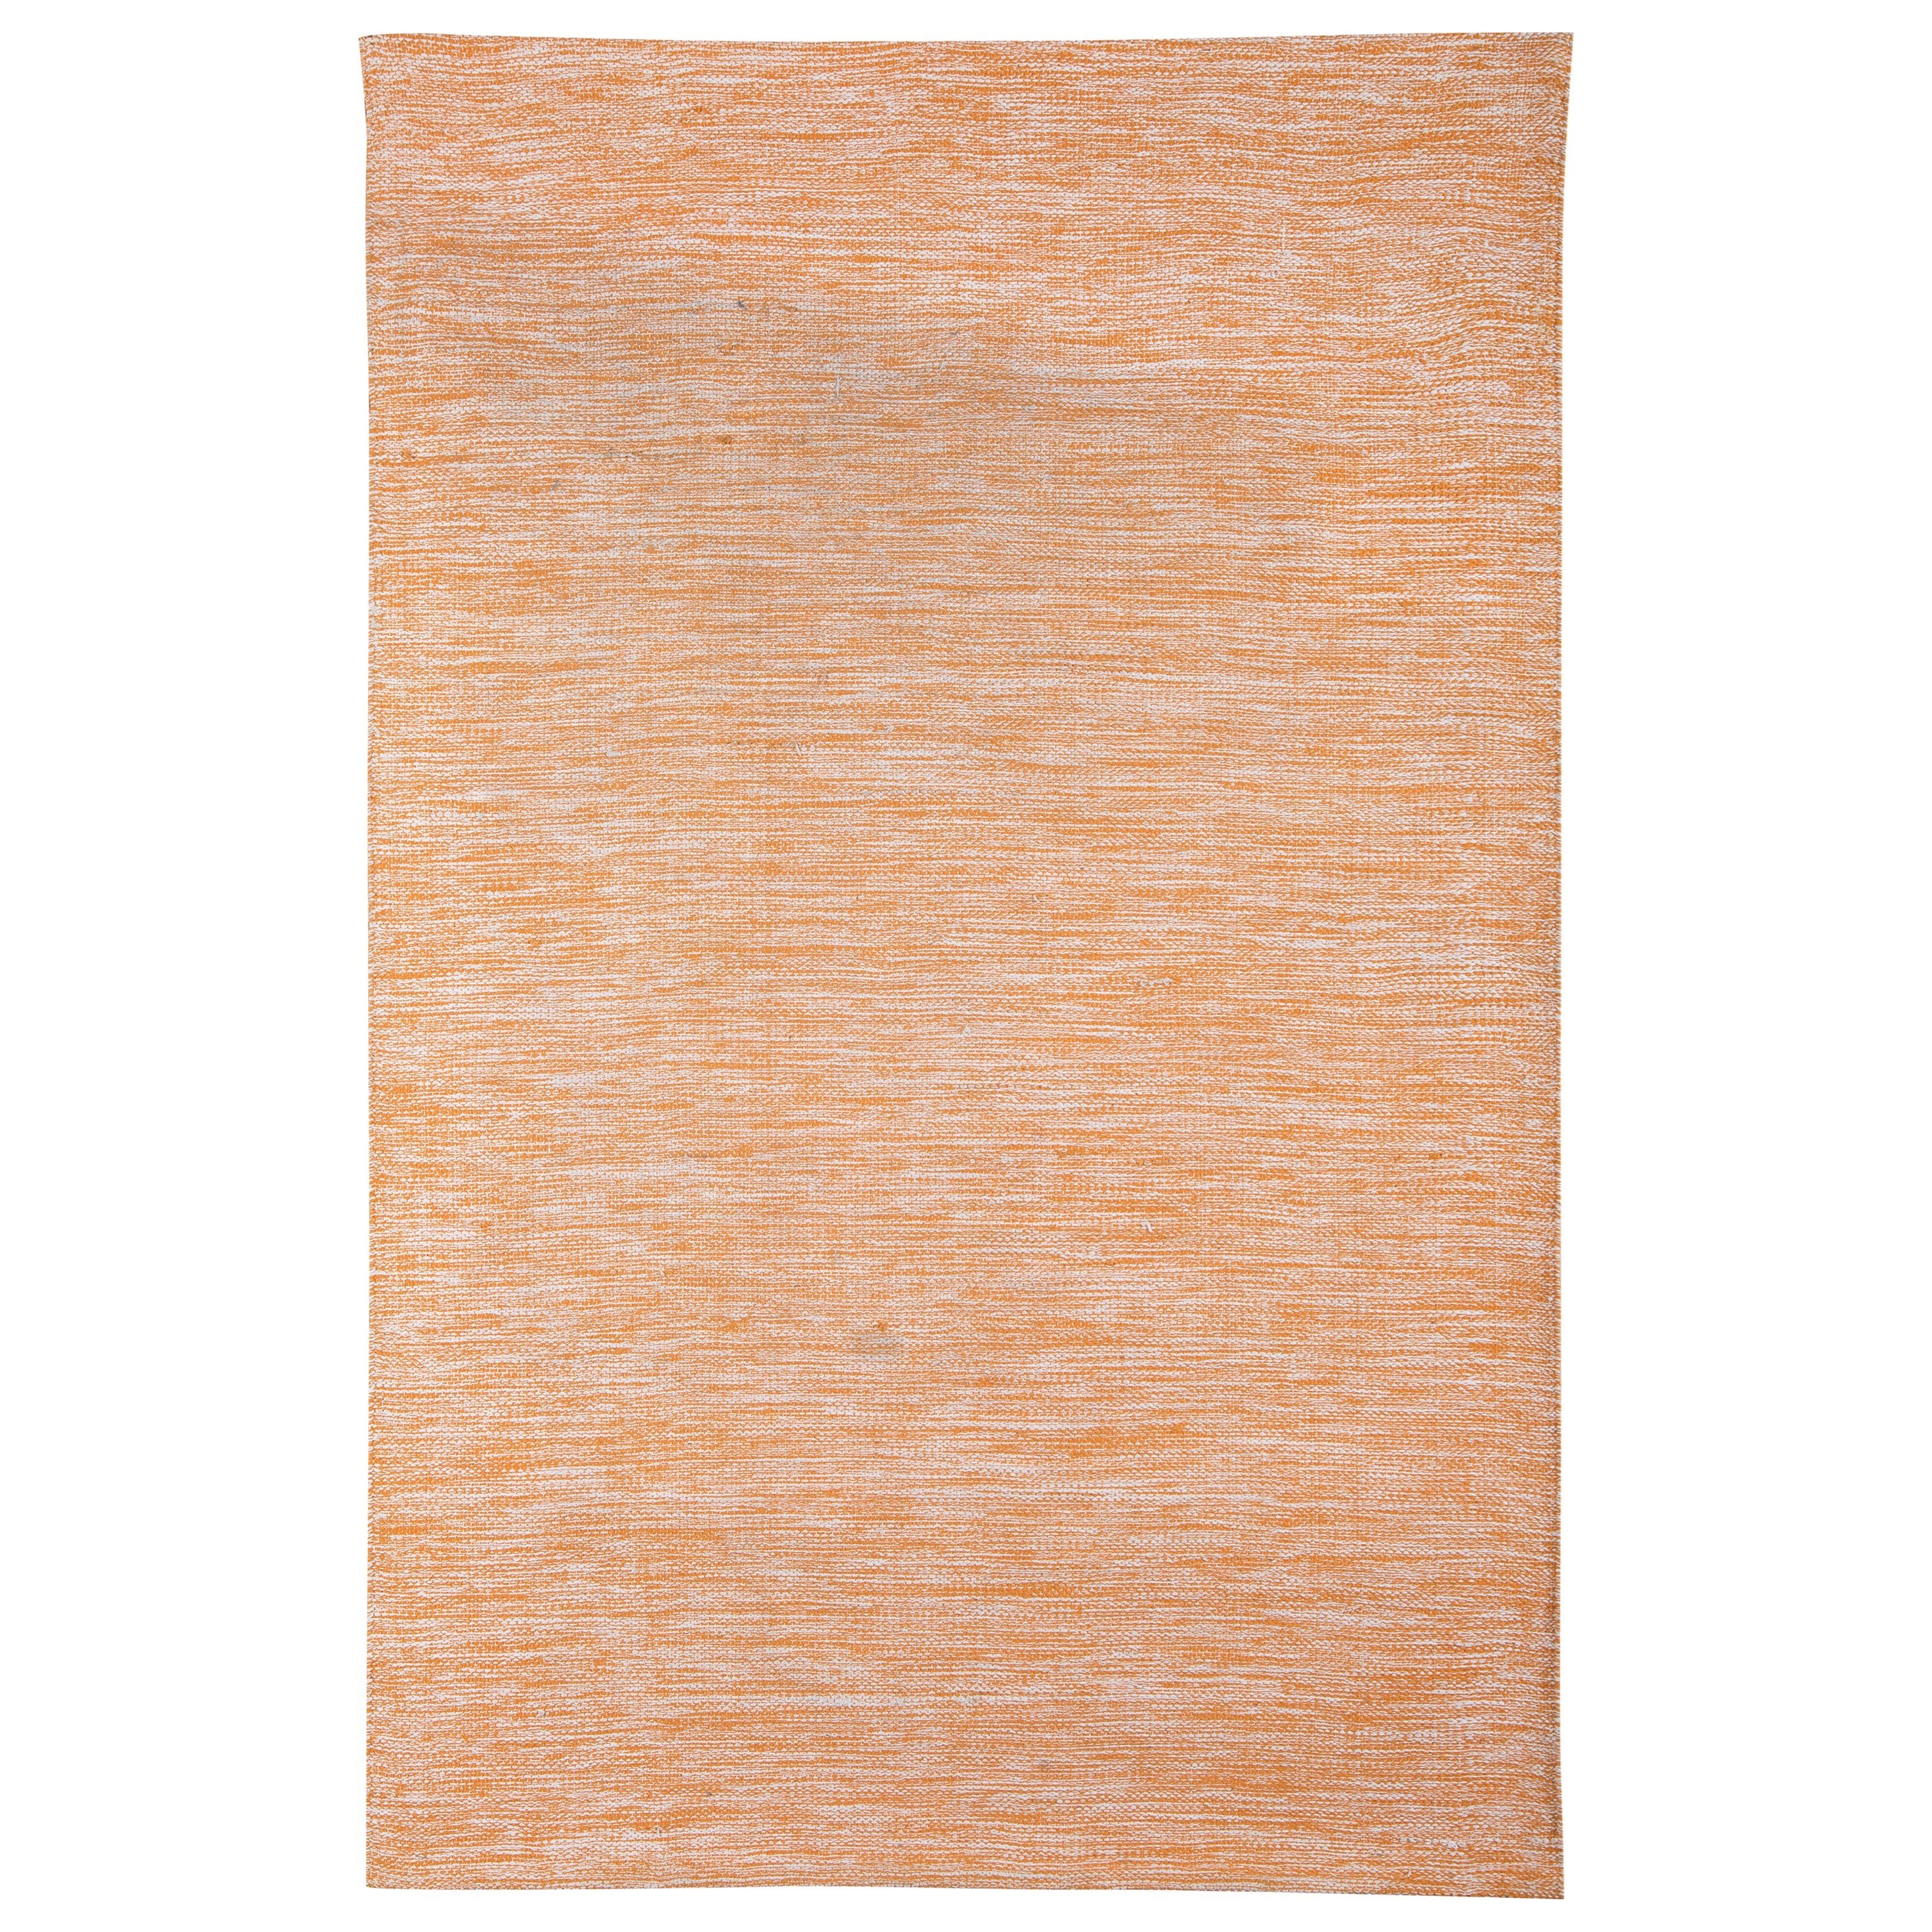 Contemporary Area Rugs Serphina Orange Medium Rug by Signature Design by Ashley at Coconis Furniture & Mattress 1st